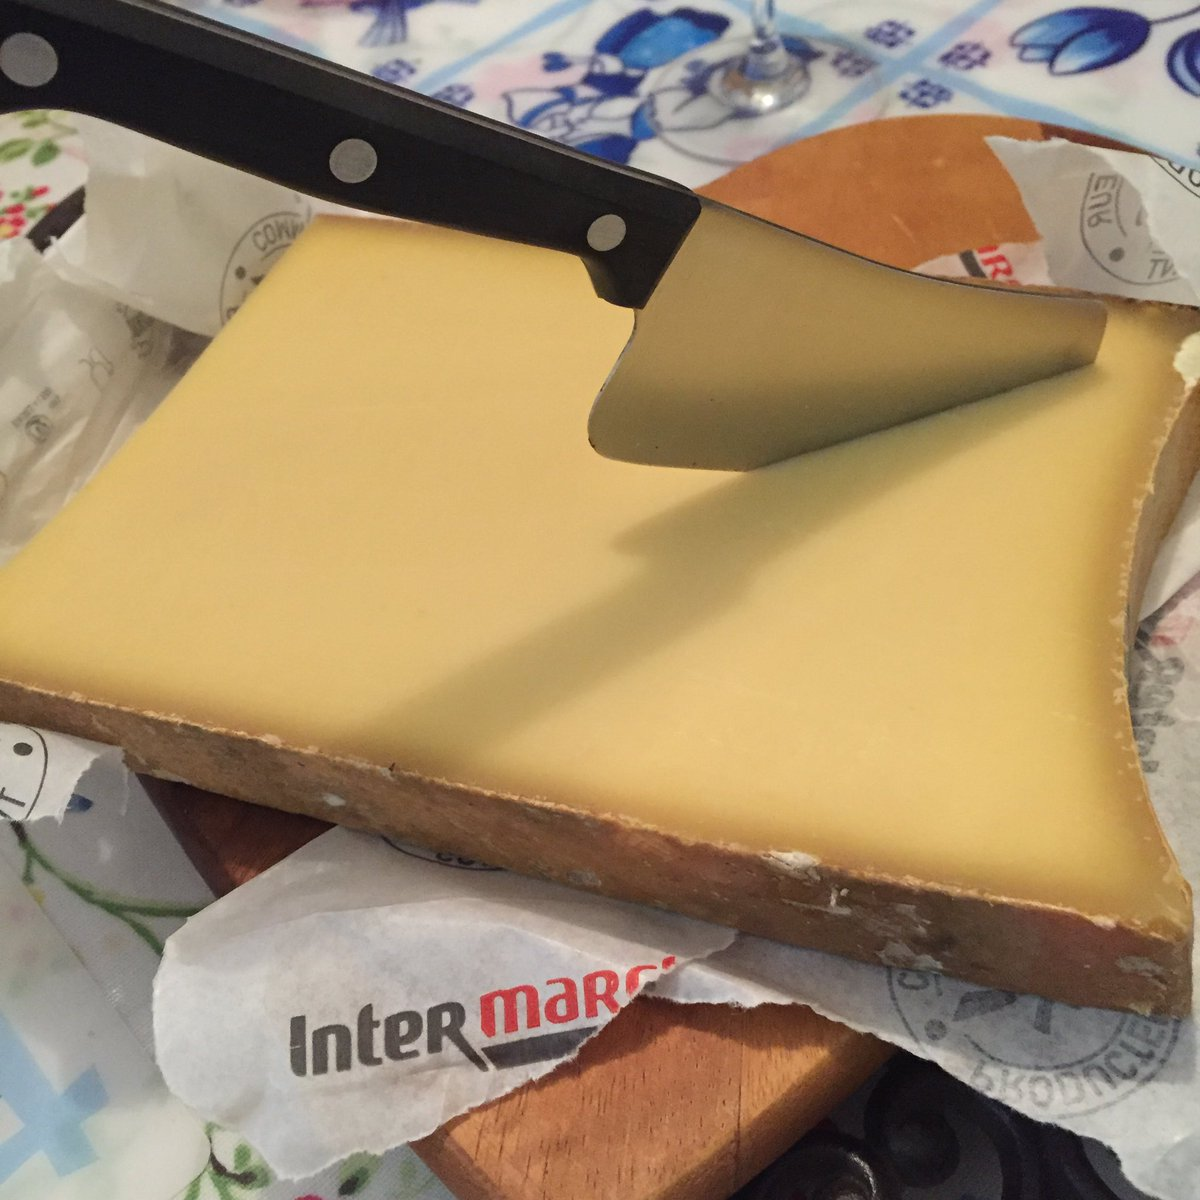 A bit of cheese (Beaufort), given today by one of the winemakers from the Savoie ... https://t.co/kUVh4wKBwv